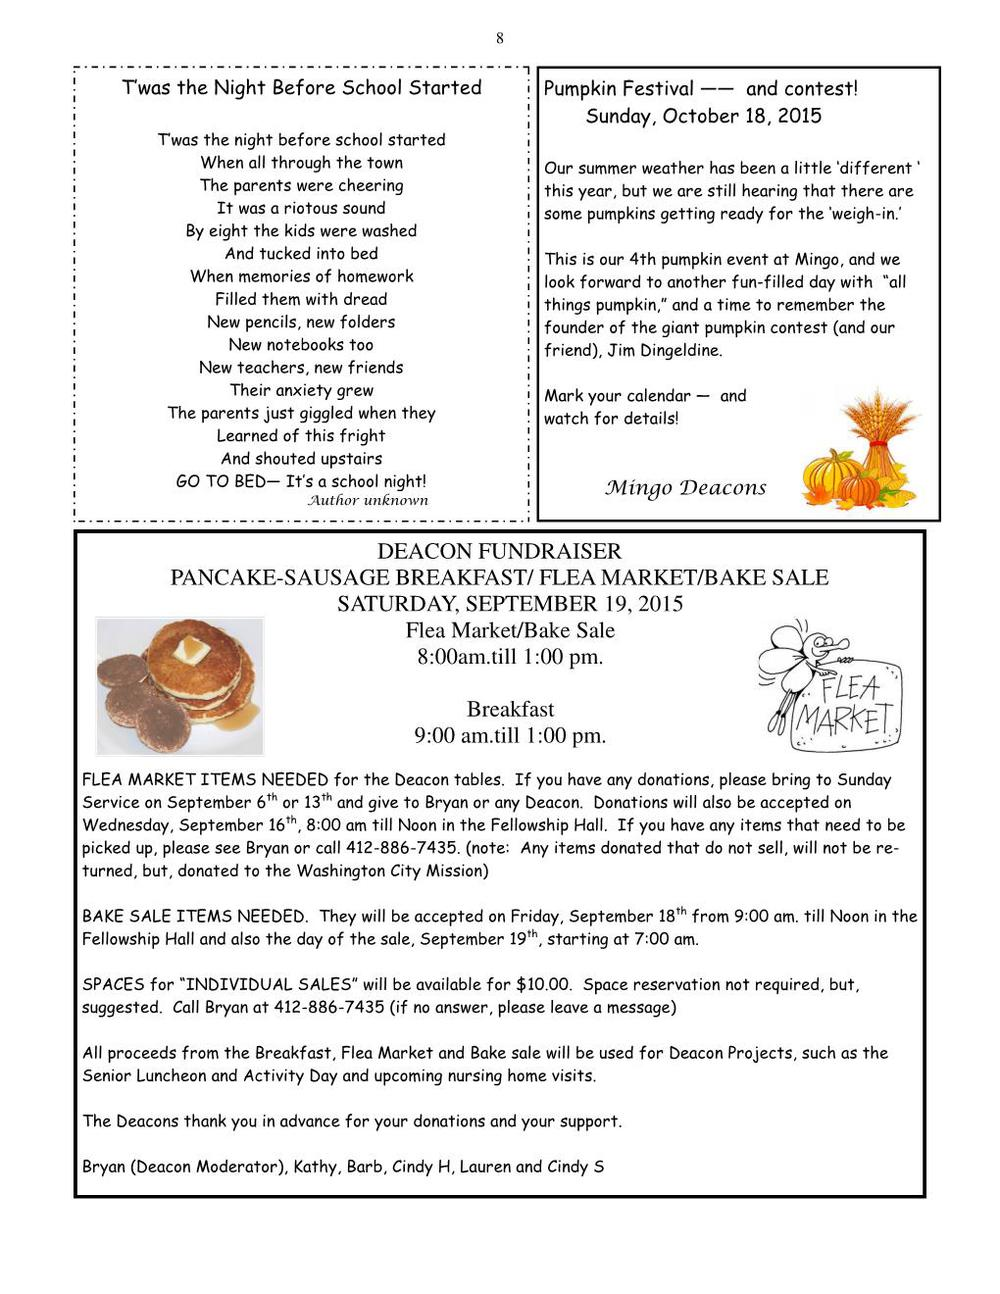 SEPTEMBER NEWSLETTER Page 008.jpg